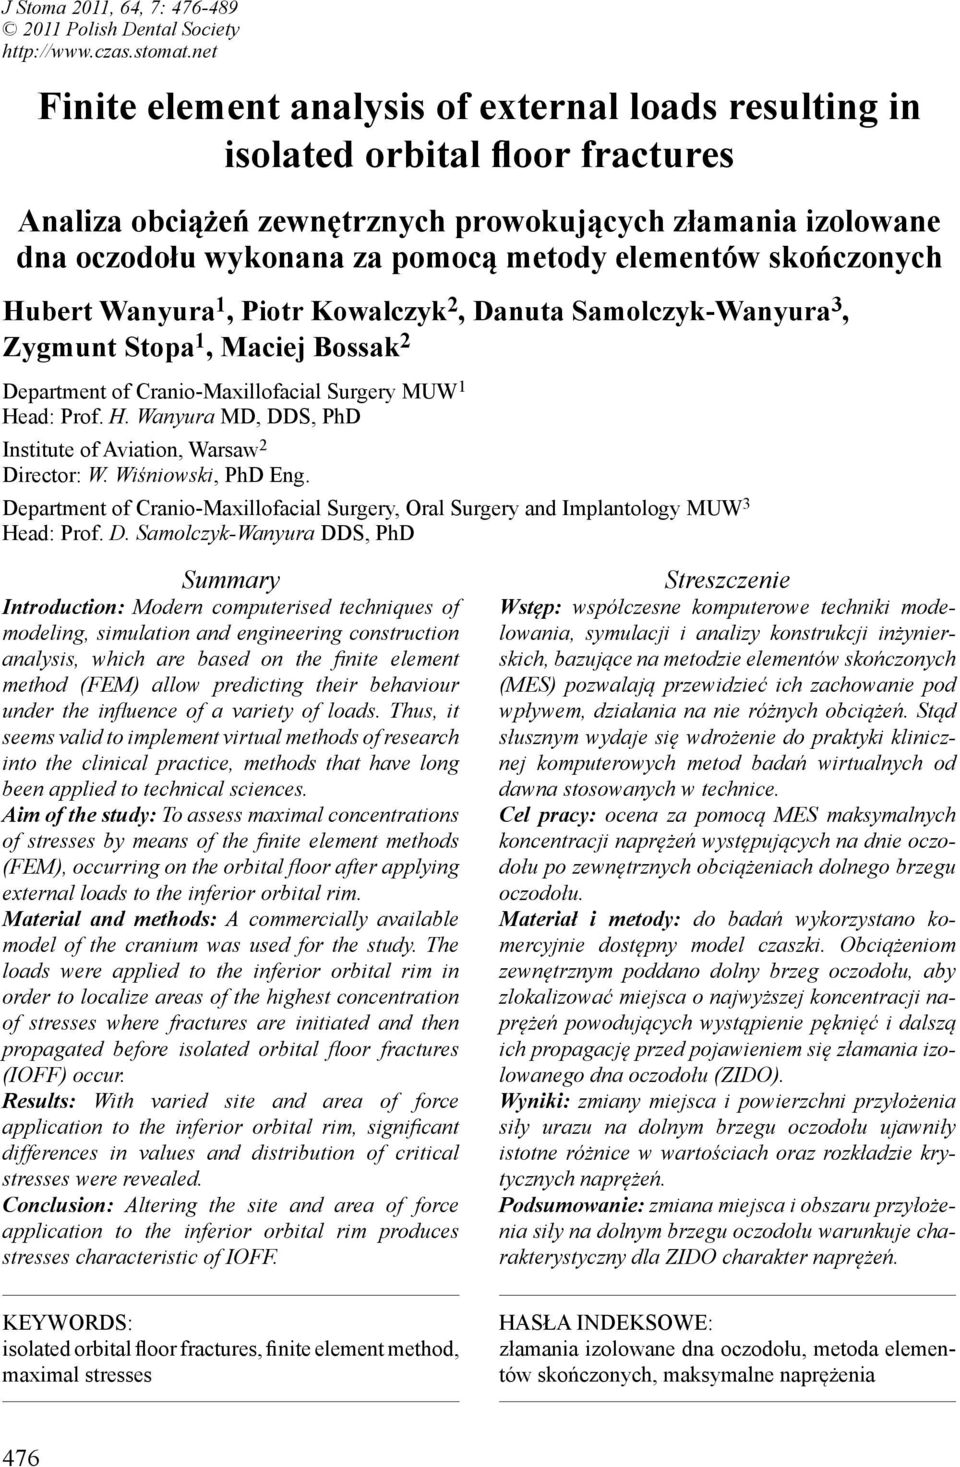 elementów skończonych Hubert Wanyura 1, Piotr Kowalczyk 2, Danuta Samolczyk-Wanyura 3, Zygmunt Stopa 1, Maciej Bossak 2 Department of Cranio-Maxillofacial Surgery MUW 1 Head: Prof. H. Wanyura MD, DDS, PhD Institute of Aviation, Warsaw 2 Director: W.